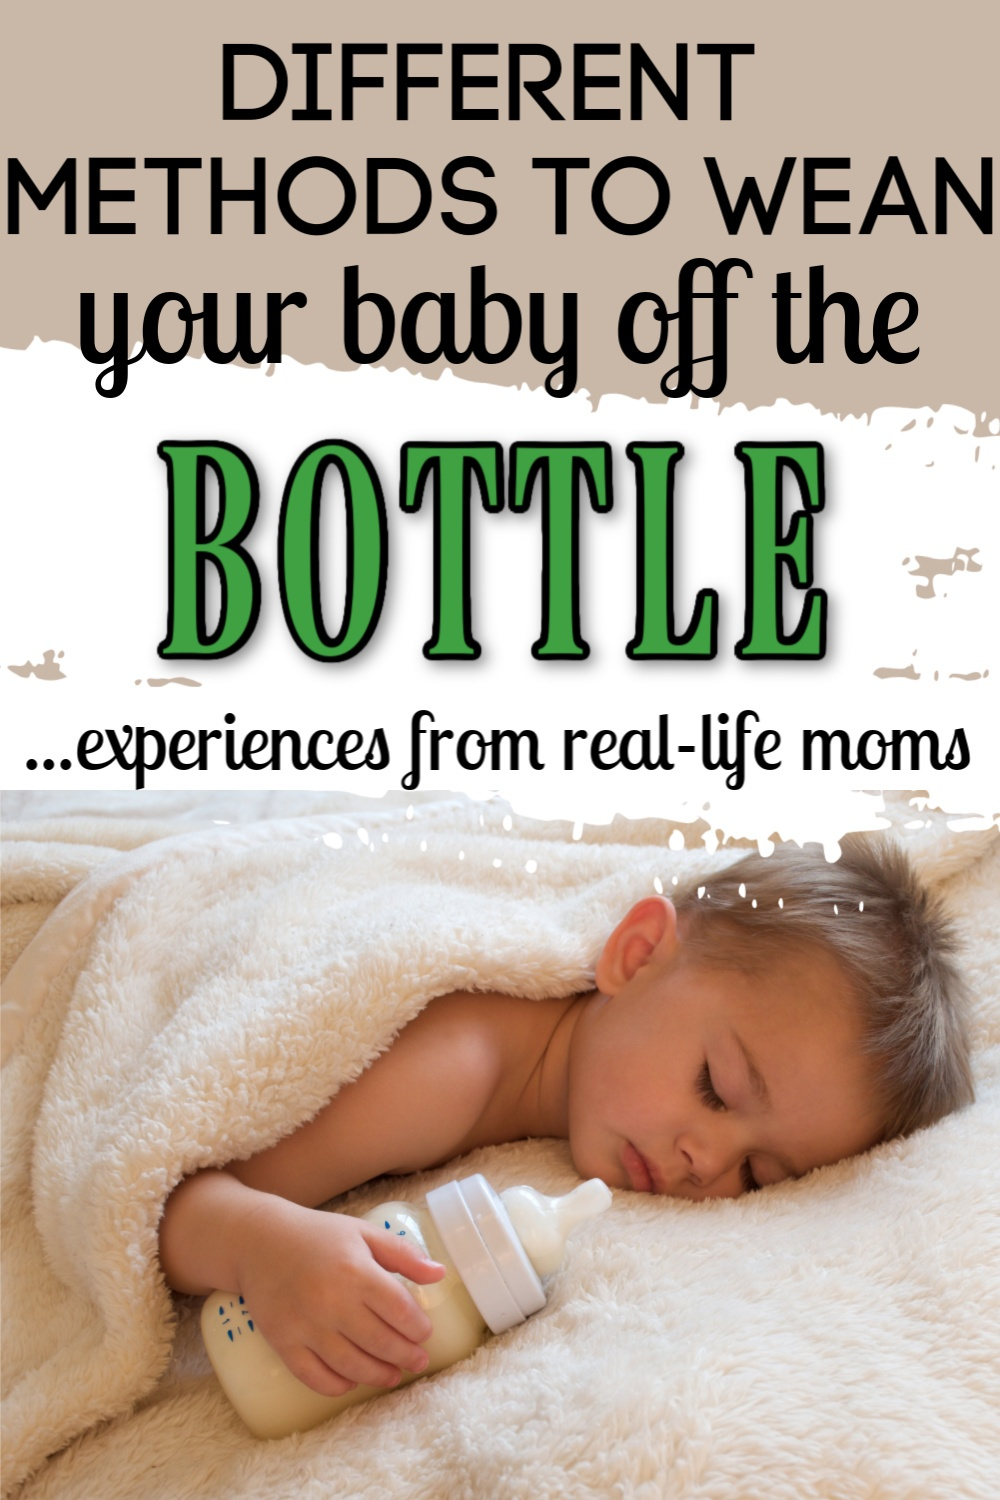 weaning your child off the bottle